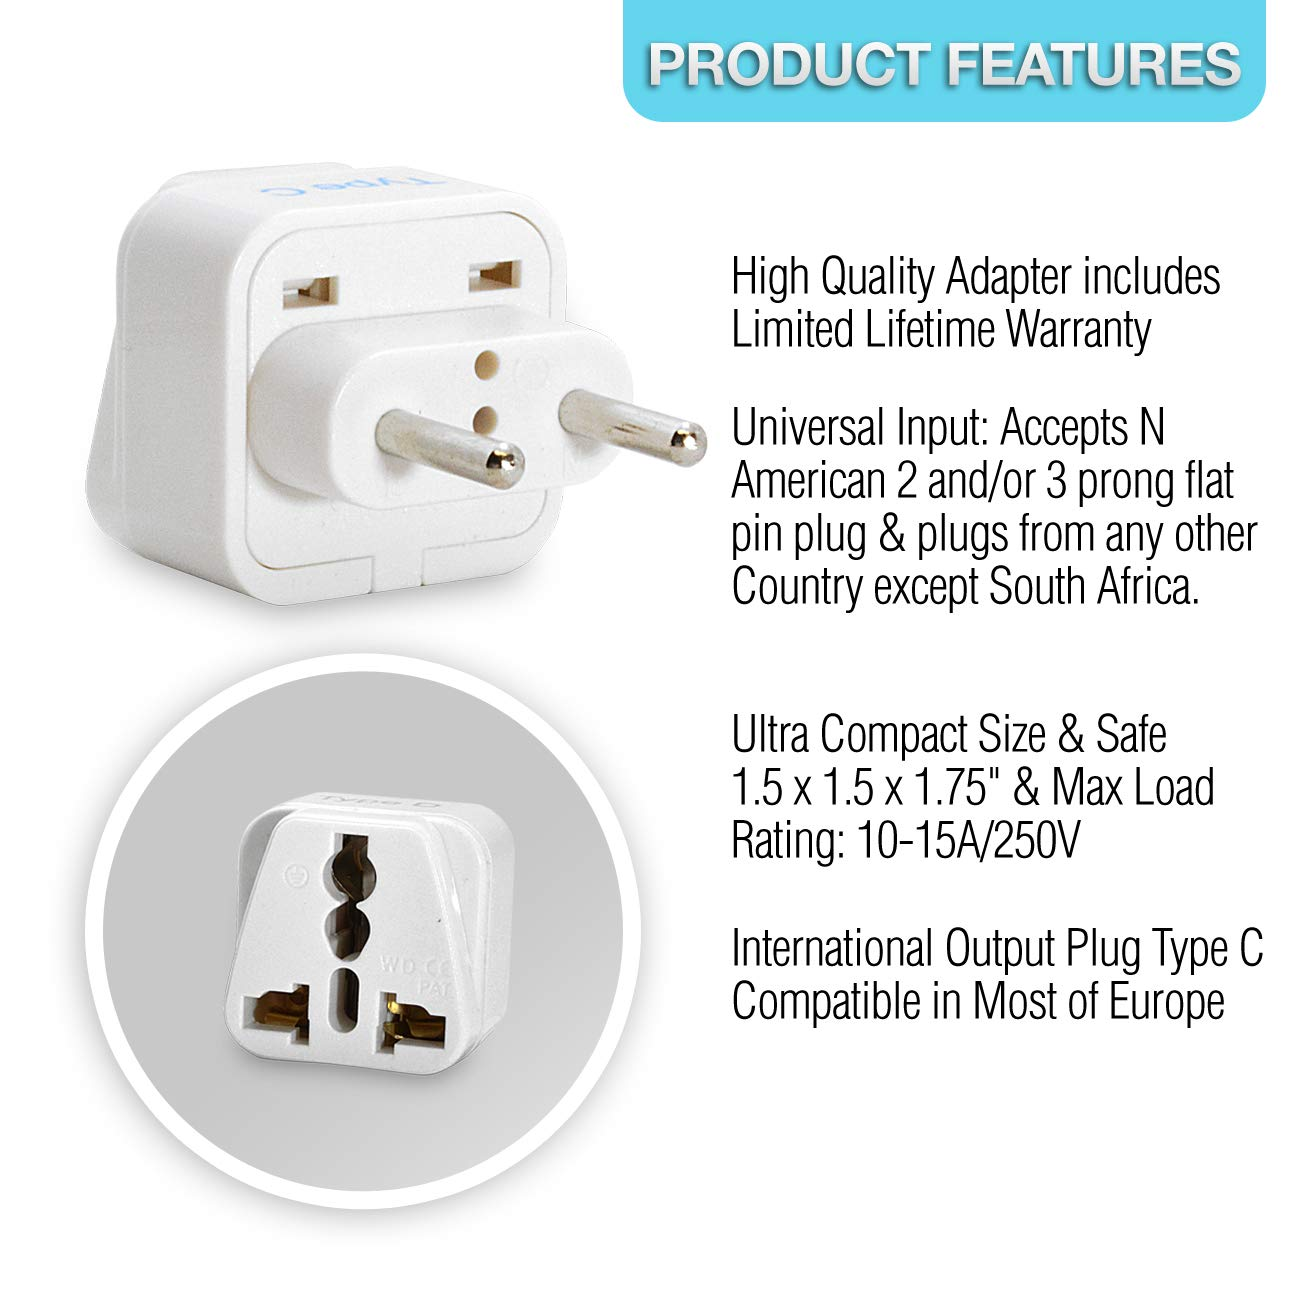 Ceptics Europe Travel Plug Adapter Type C For Most 3 Prong Male 240 Volt Wiring Diagram European Countries Pack Grounded Universal Gp 9c 3pk Home Audio Theater